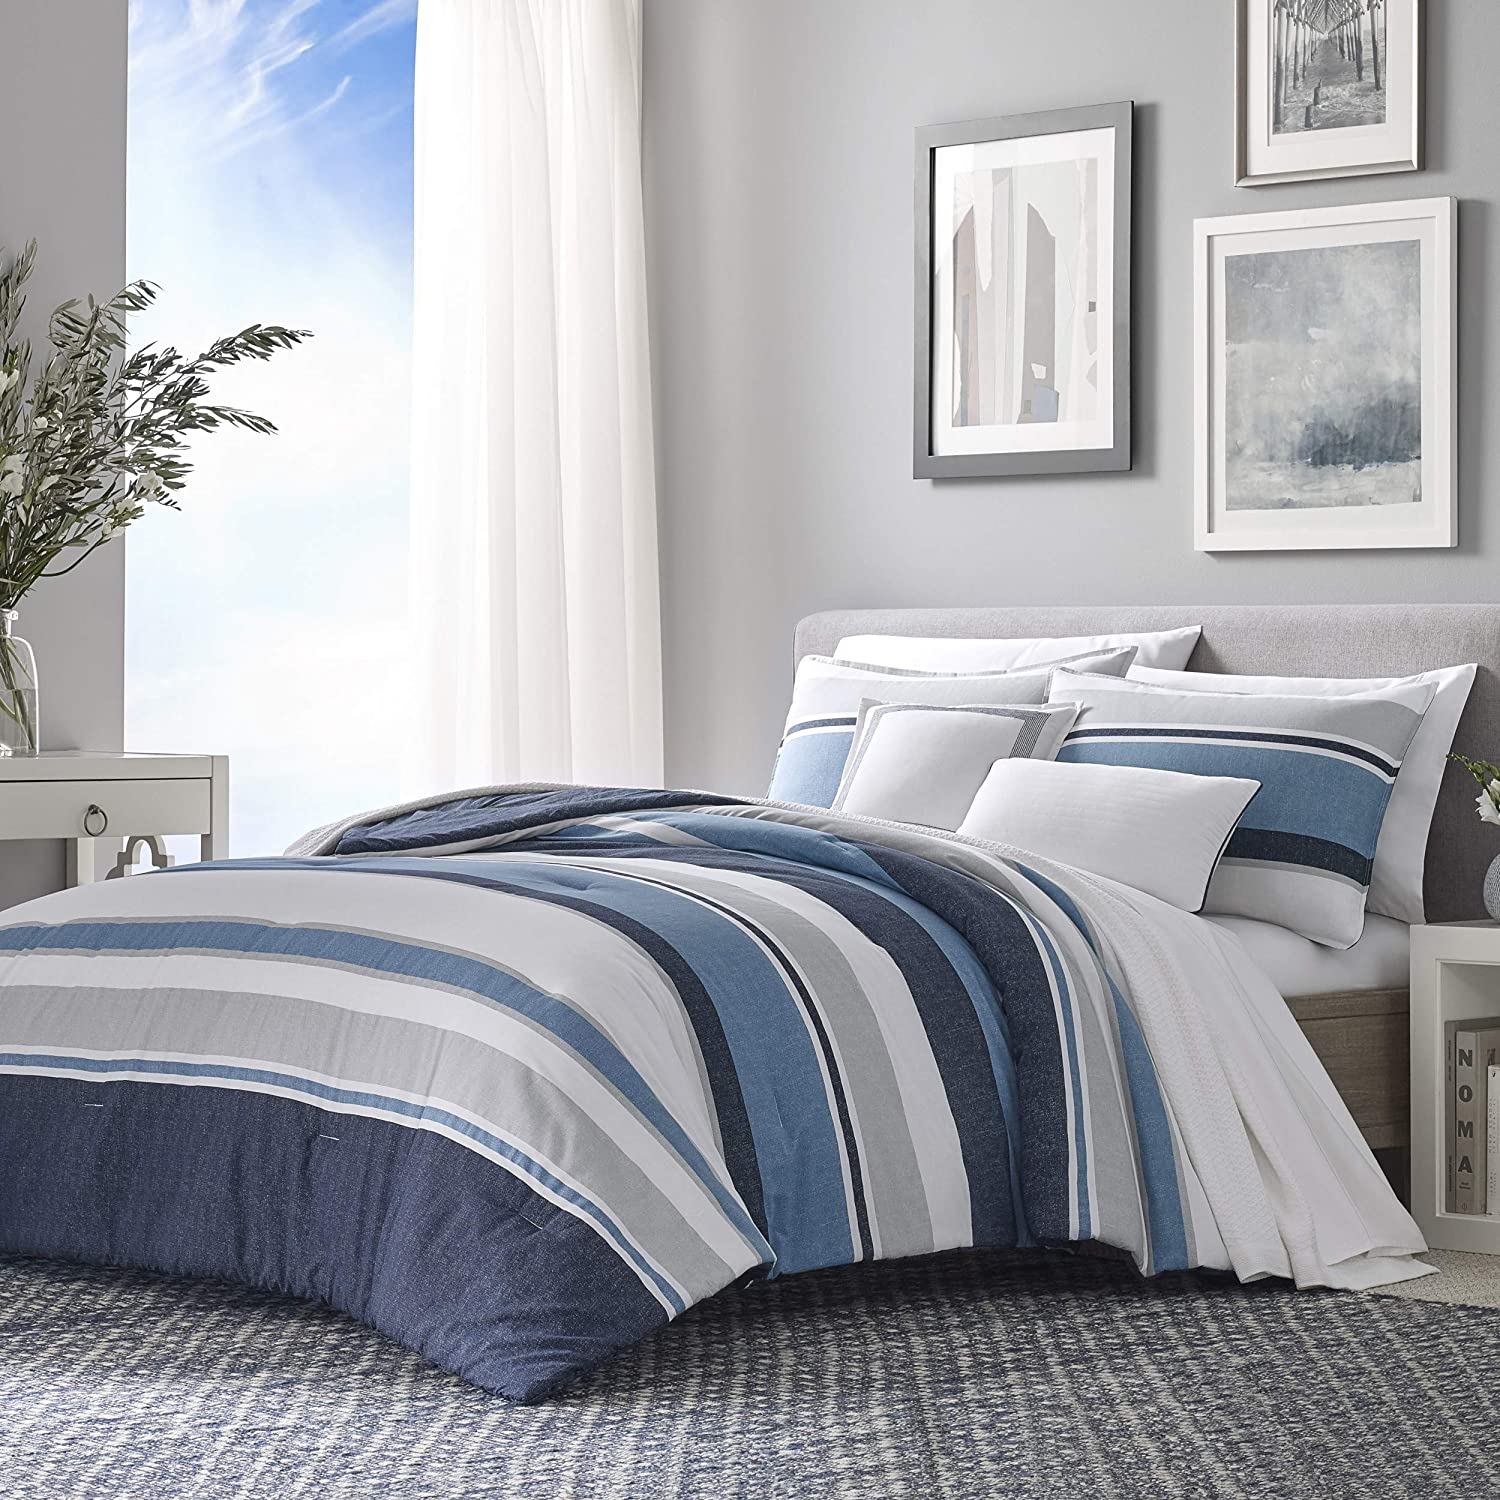 Nautica Westport 5-Pc Comforter Set